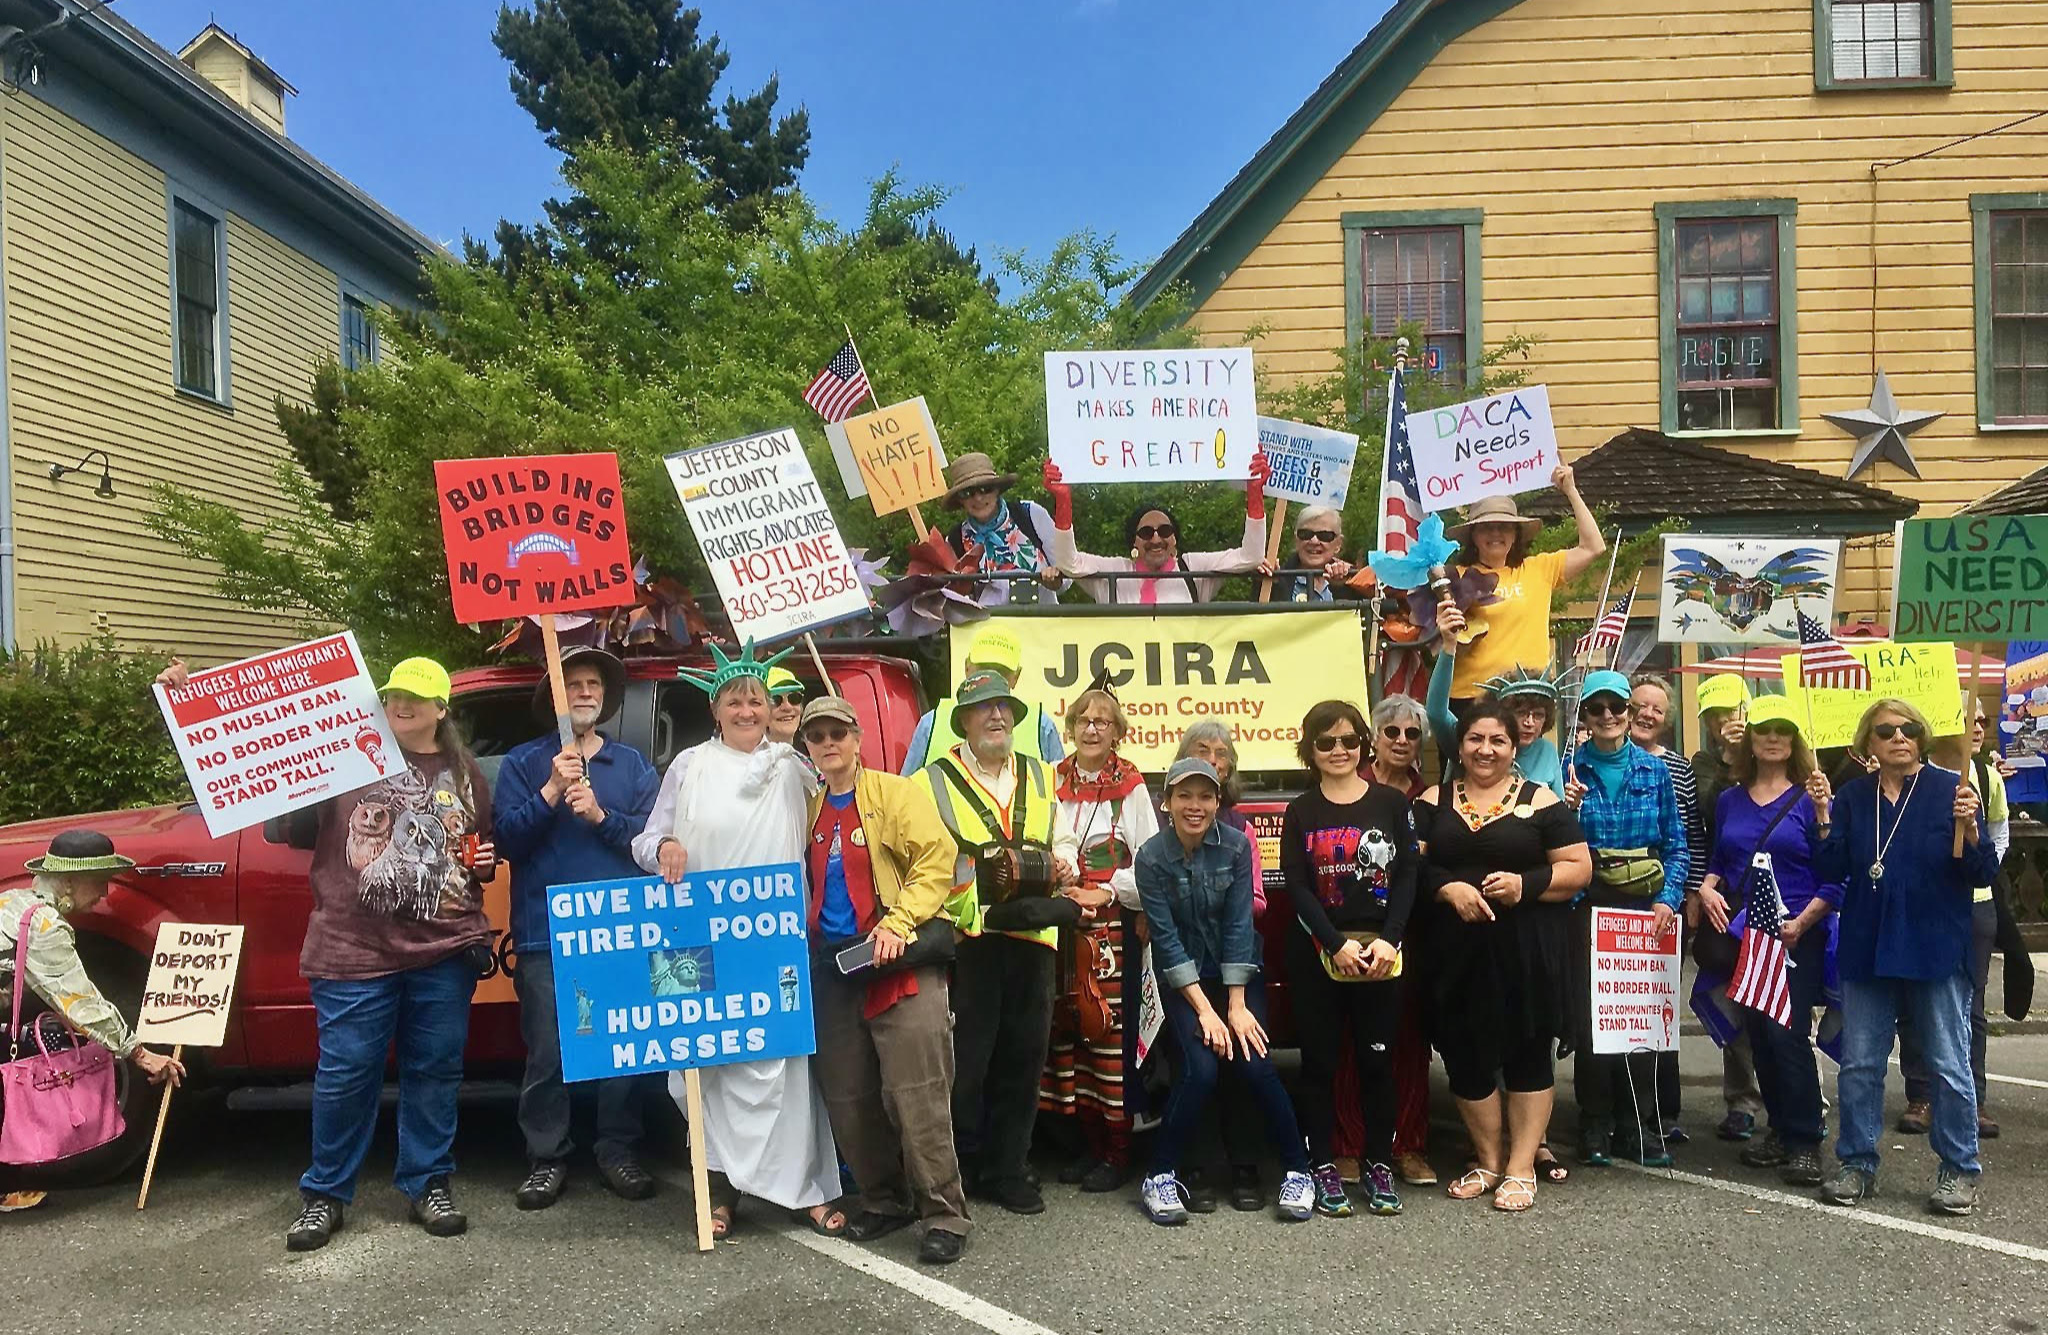 JCIRA+at+Rhody+Parade+2018.jpg